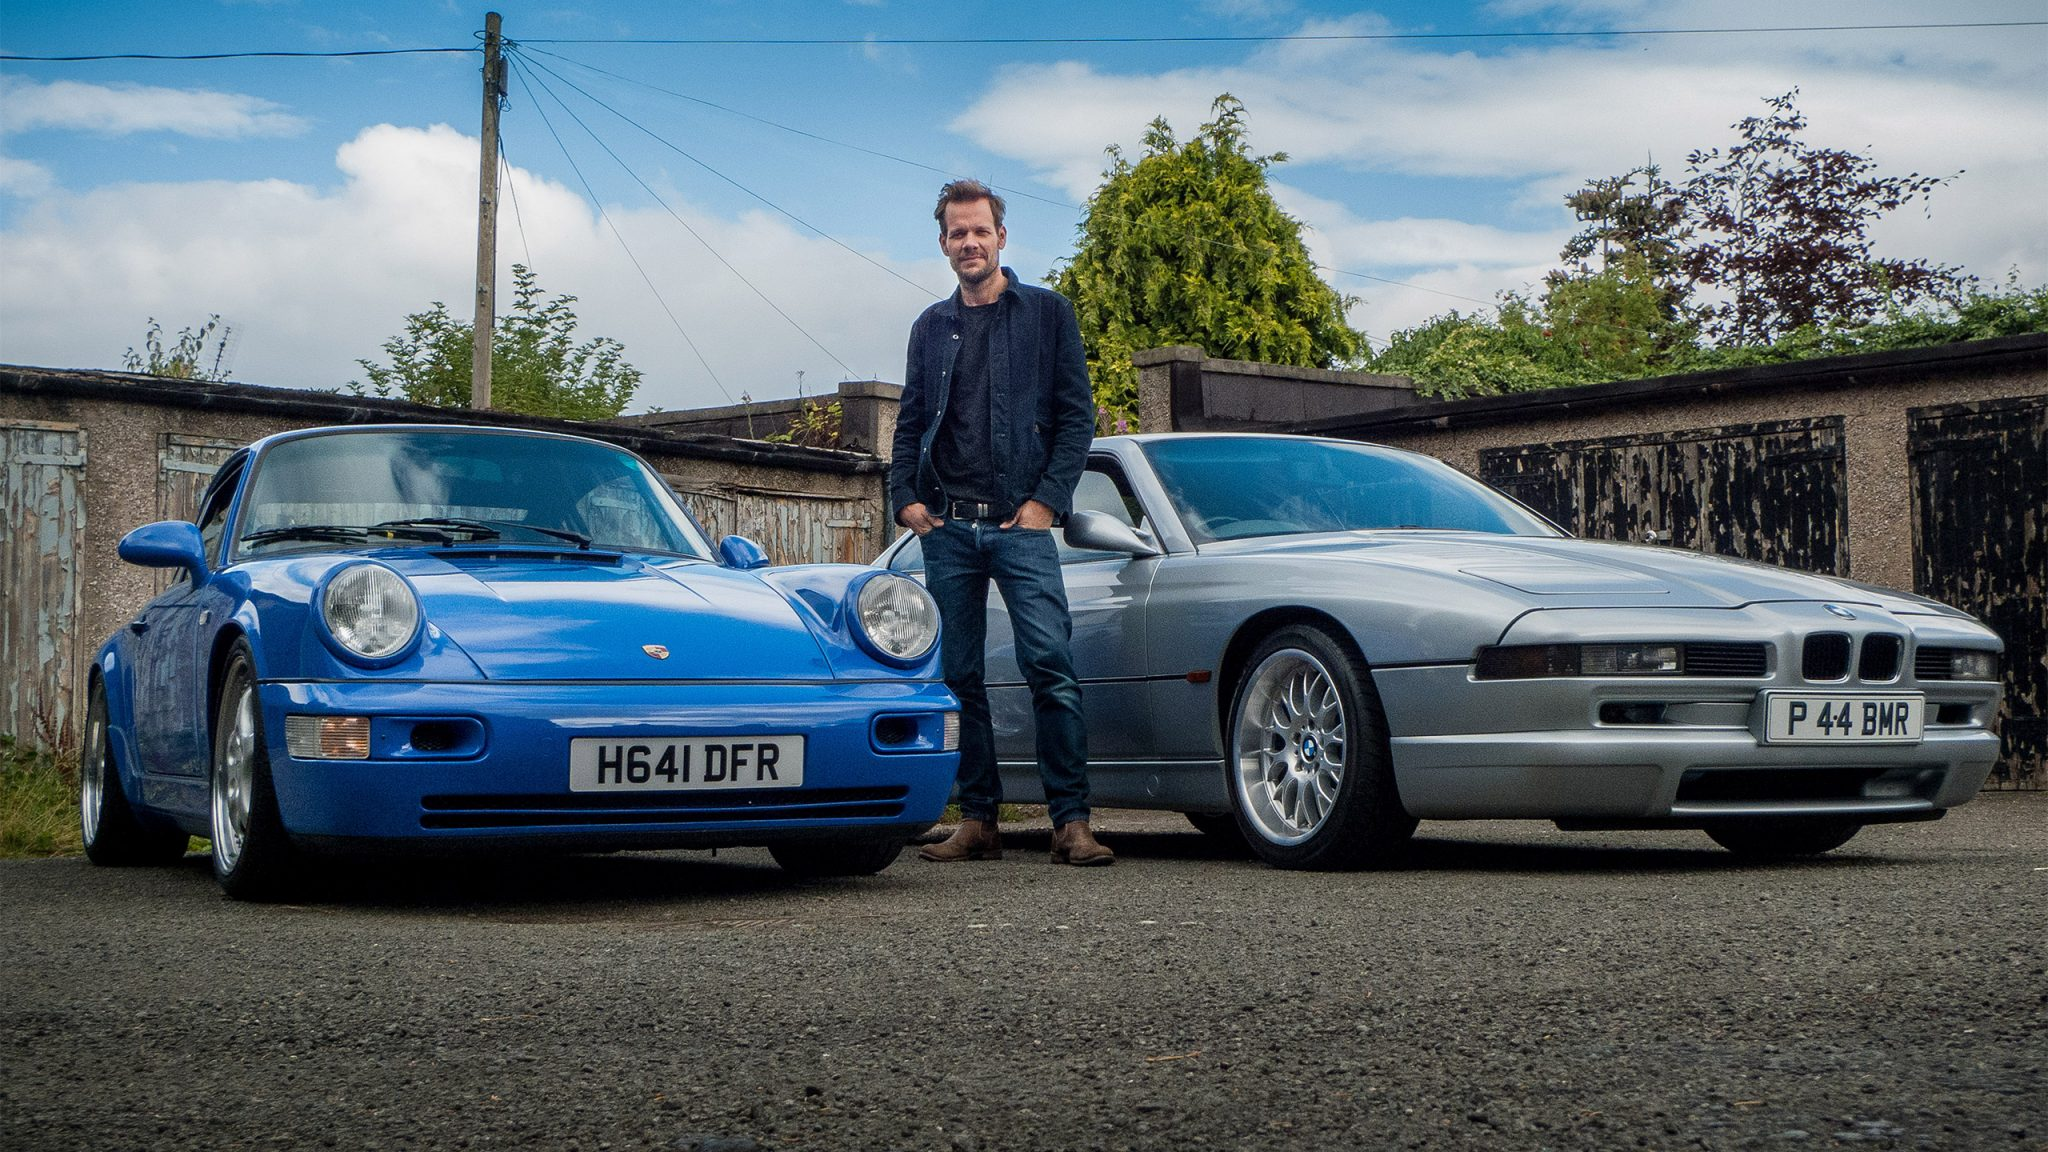 Renowned Movie Stills Photographer Jaap Buitendijk with two of his cars from his collection.